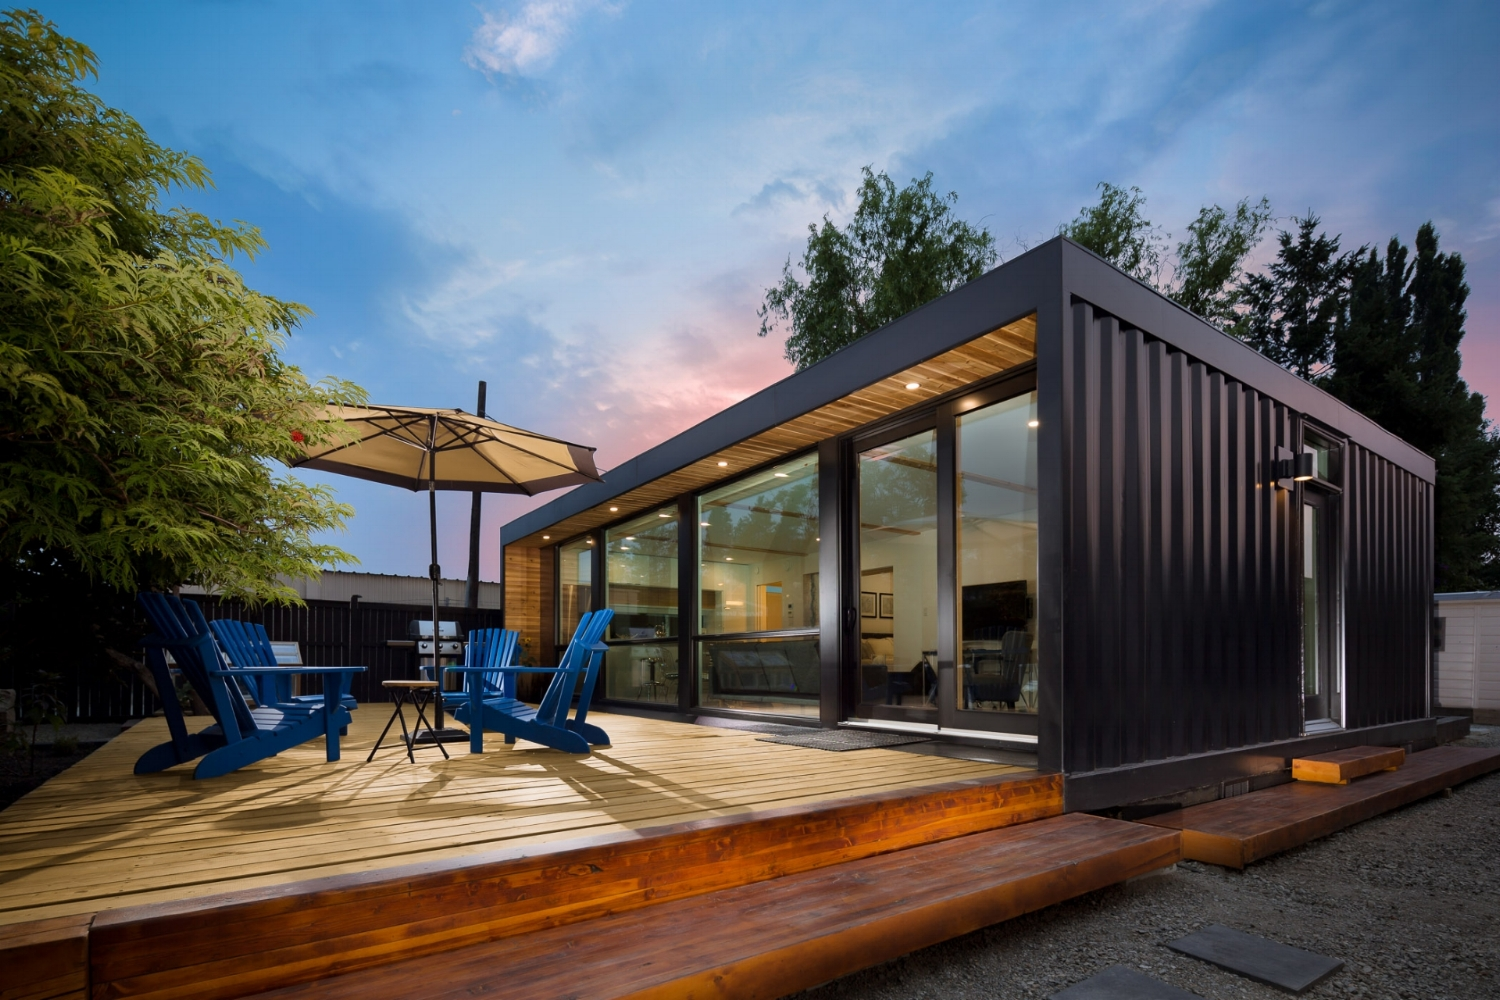 honomobo | modern shipping container homes